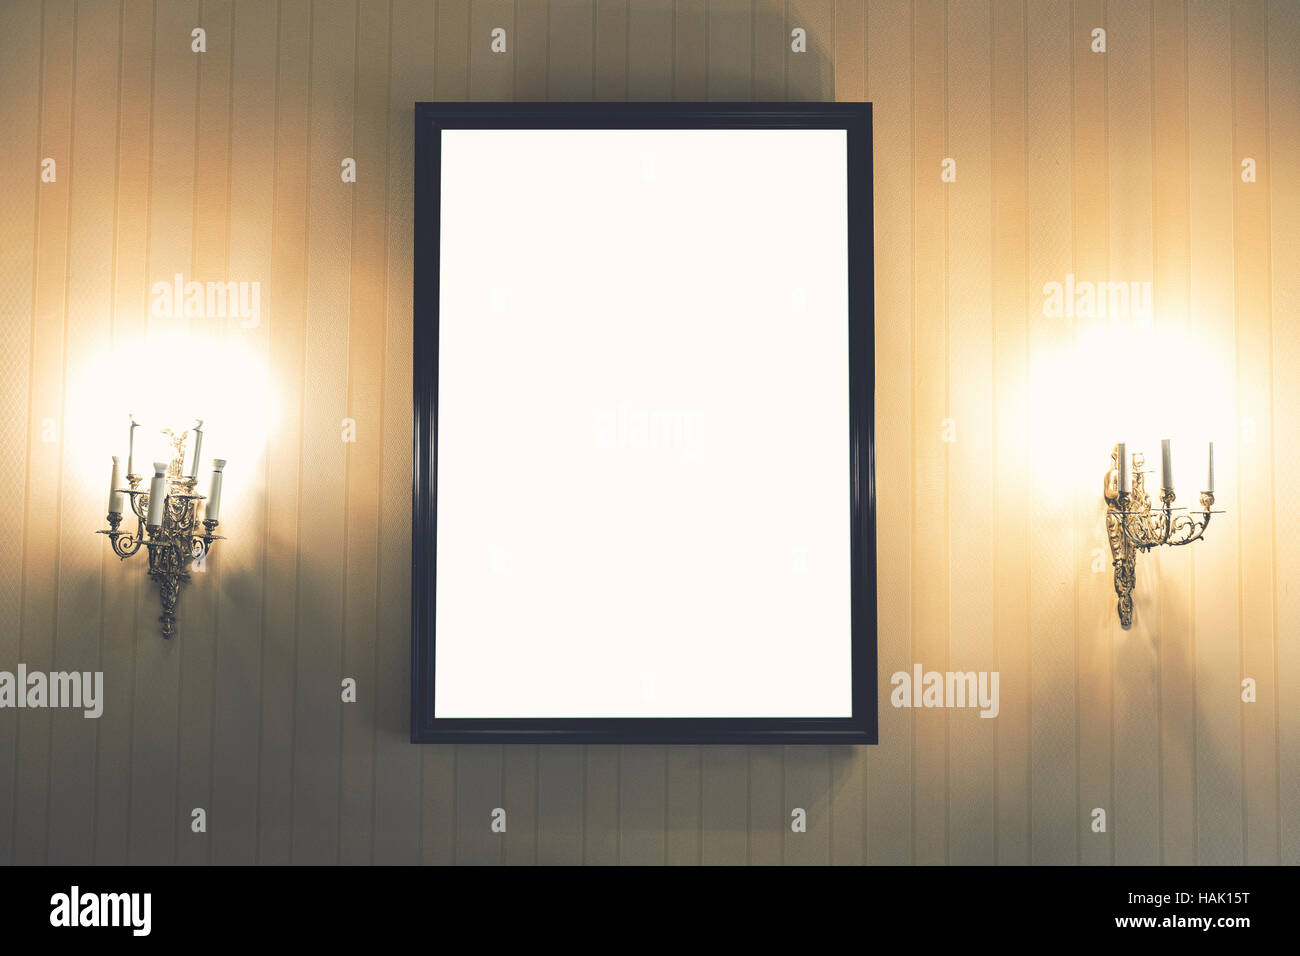 blank picture frame on the wall in vintage interior - Stock Image